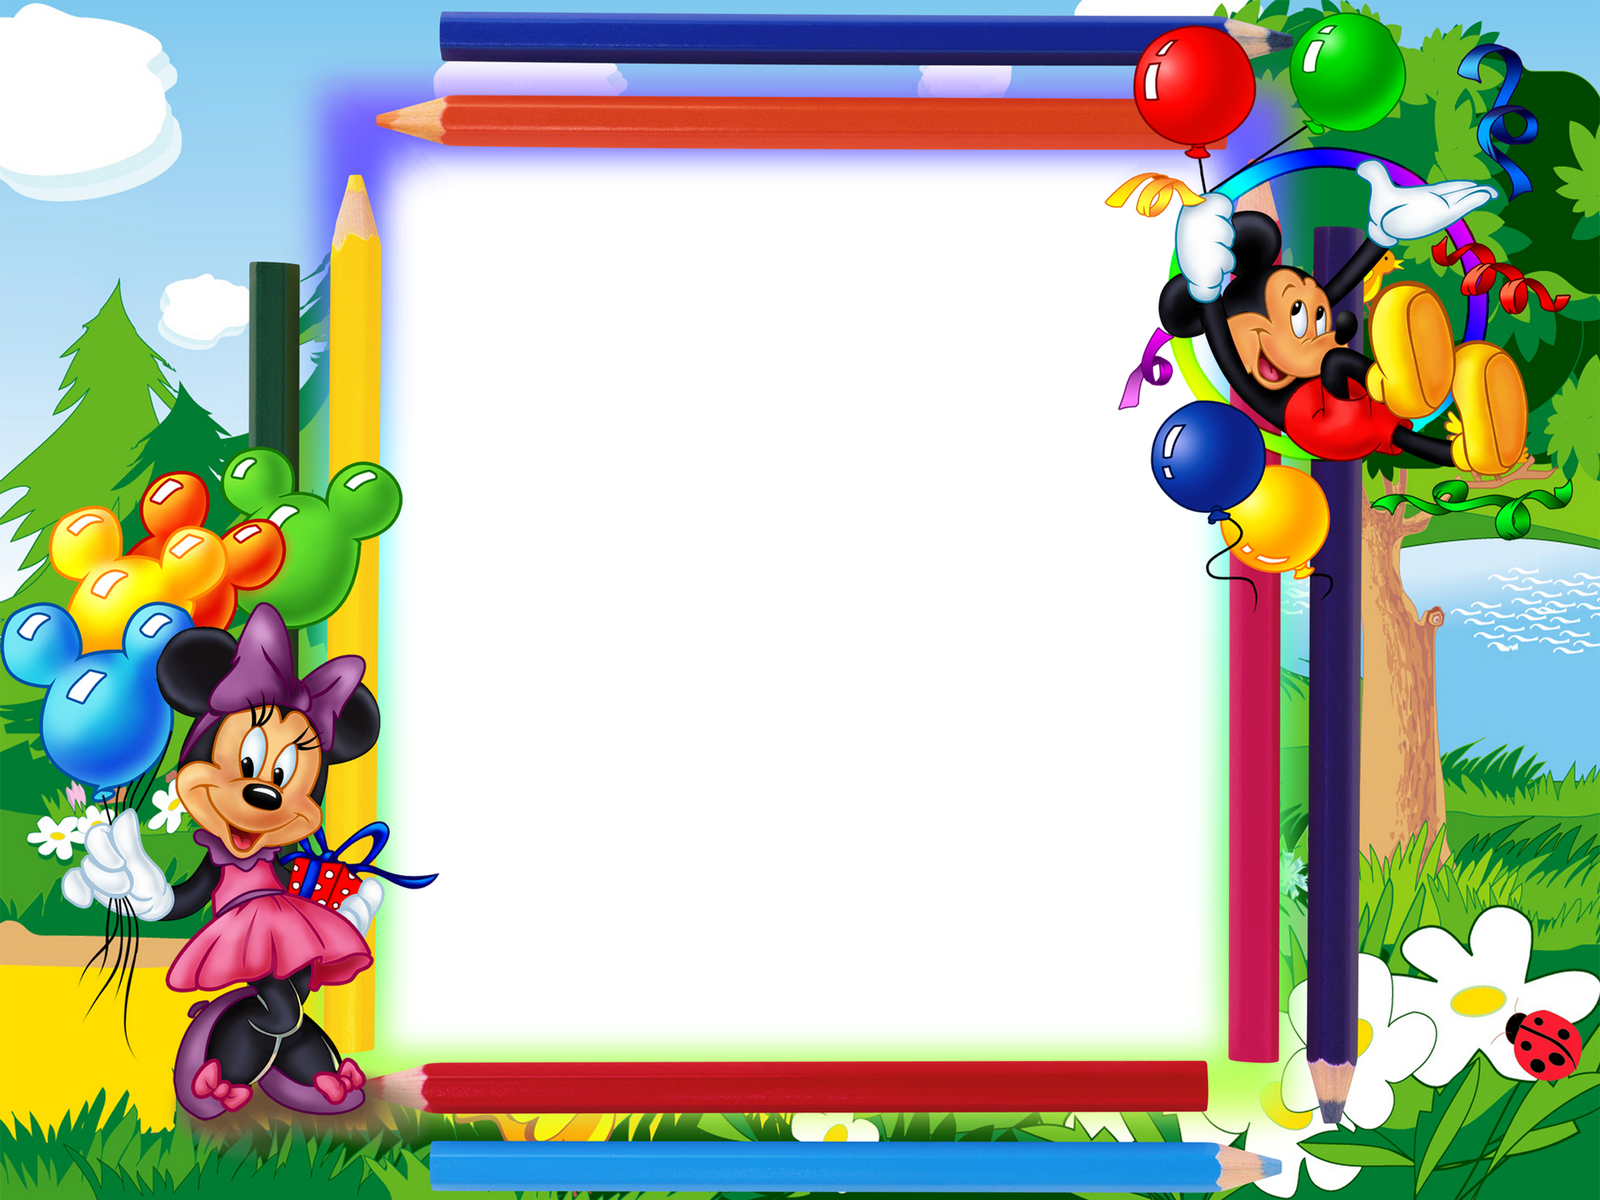 Mickey mouse border png. Frame wallpapers high quality